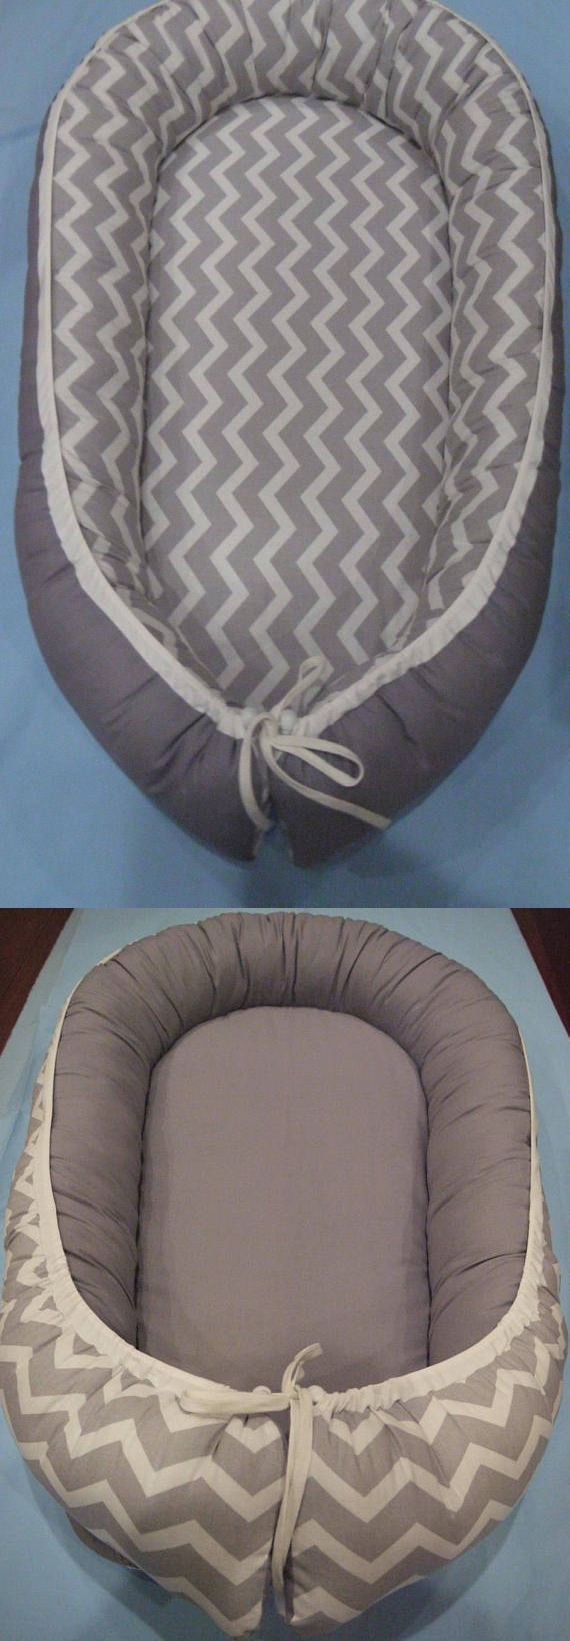 Other Nursery Bedding 20421: Baby Nest 100% Cotton, Baby Bedding, Co Sleeper, Grey Chevron, Travel Bed -> BUY IT NOW ONLY: $64 on eBay!